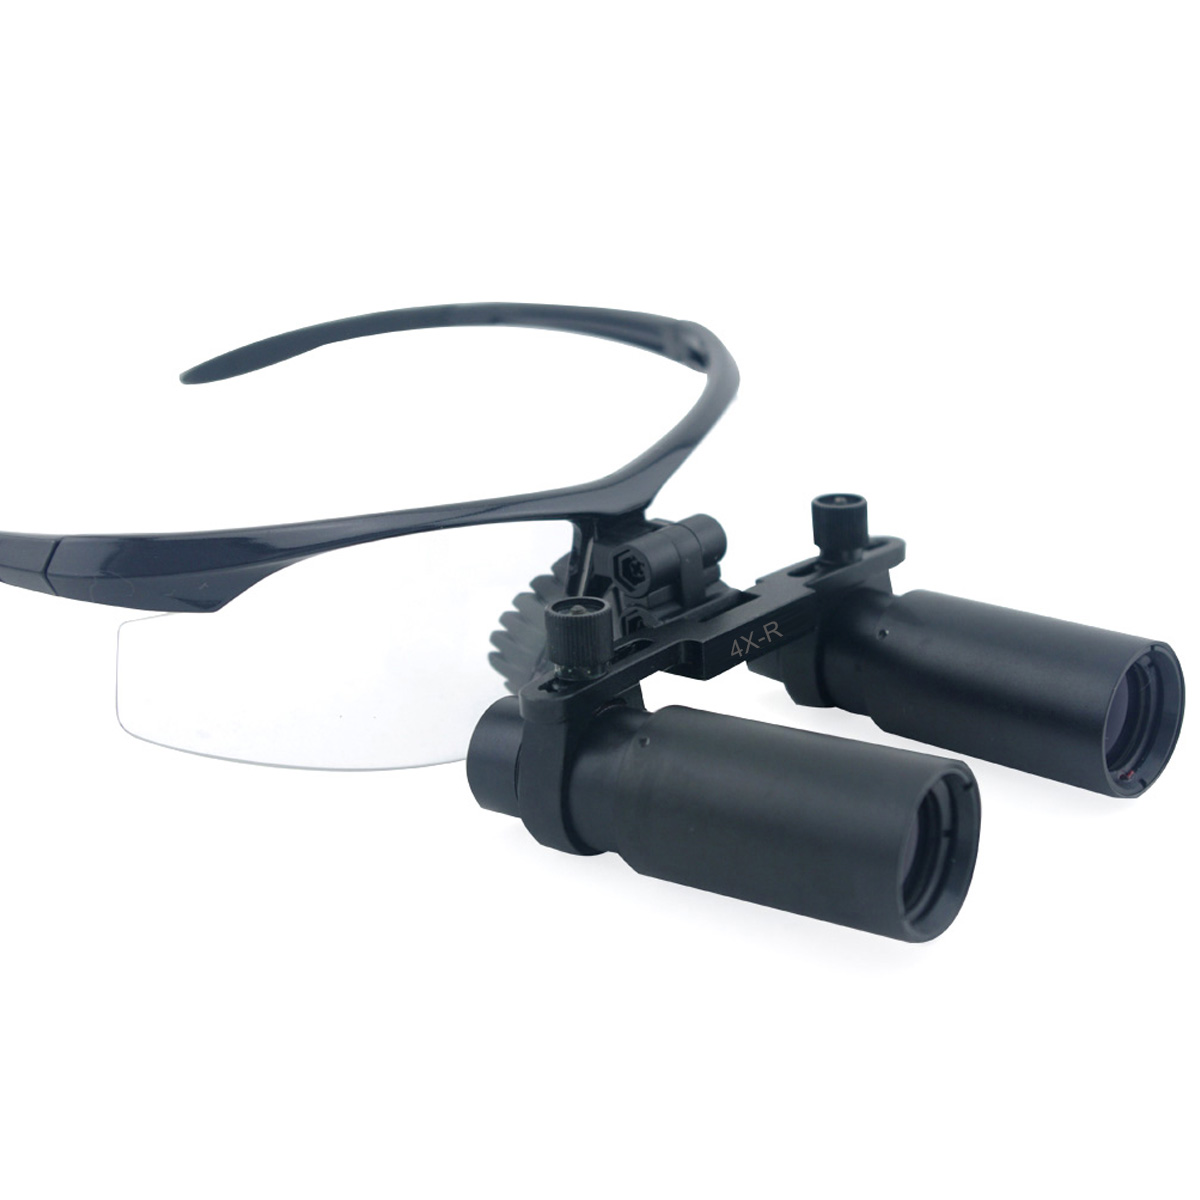 Spark 4.0x Magnification Professional Loupes with BP Sports Frame and Mounted LED Head Light Adjustable Pupil Distance CM400AXSL<br><br>Aliexpress